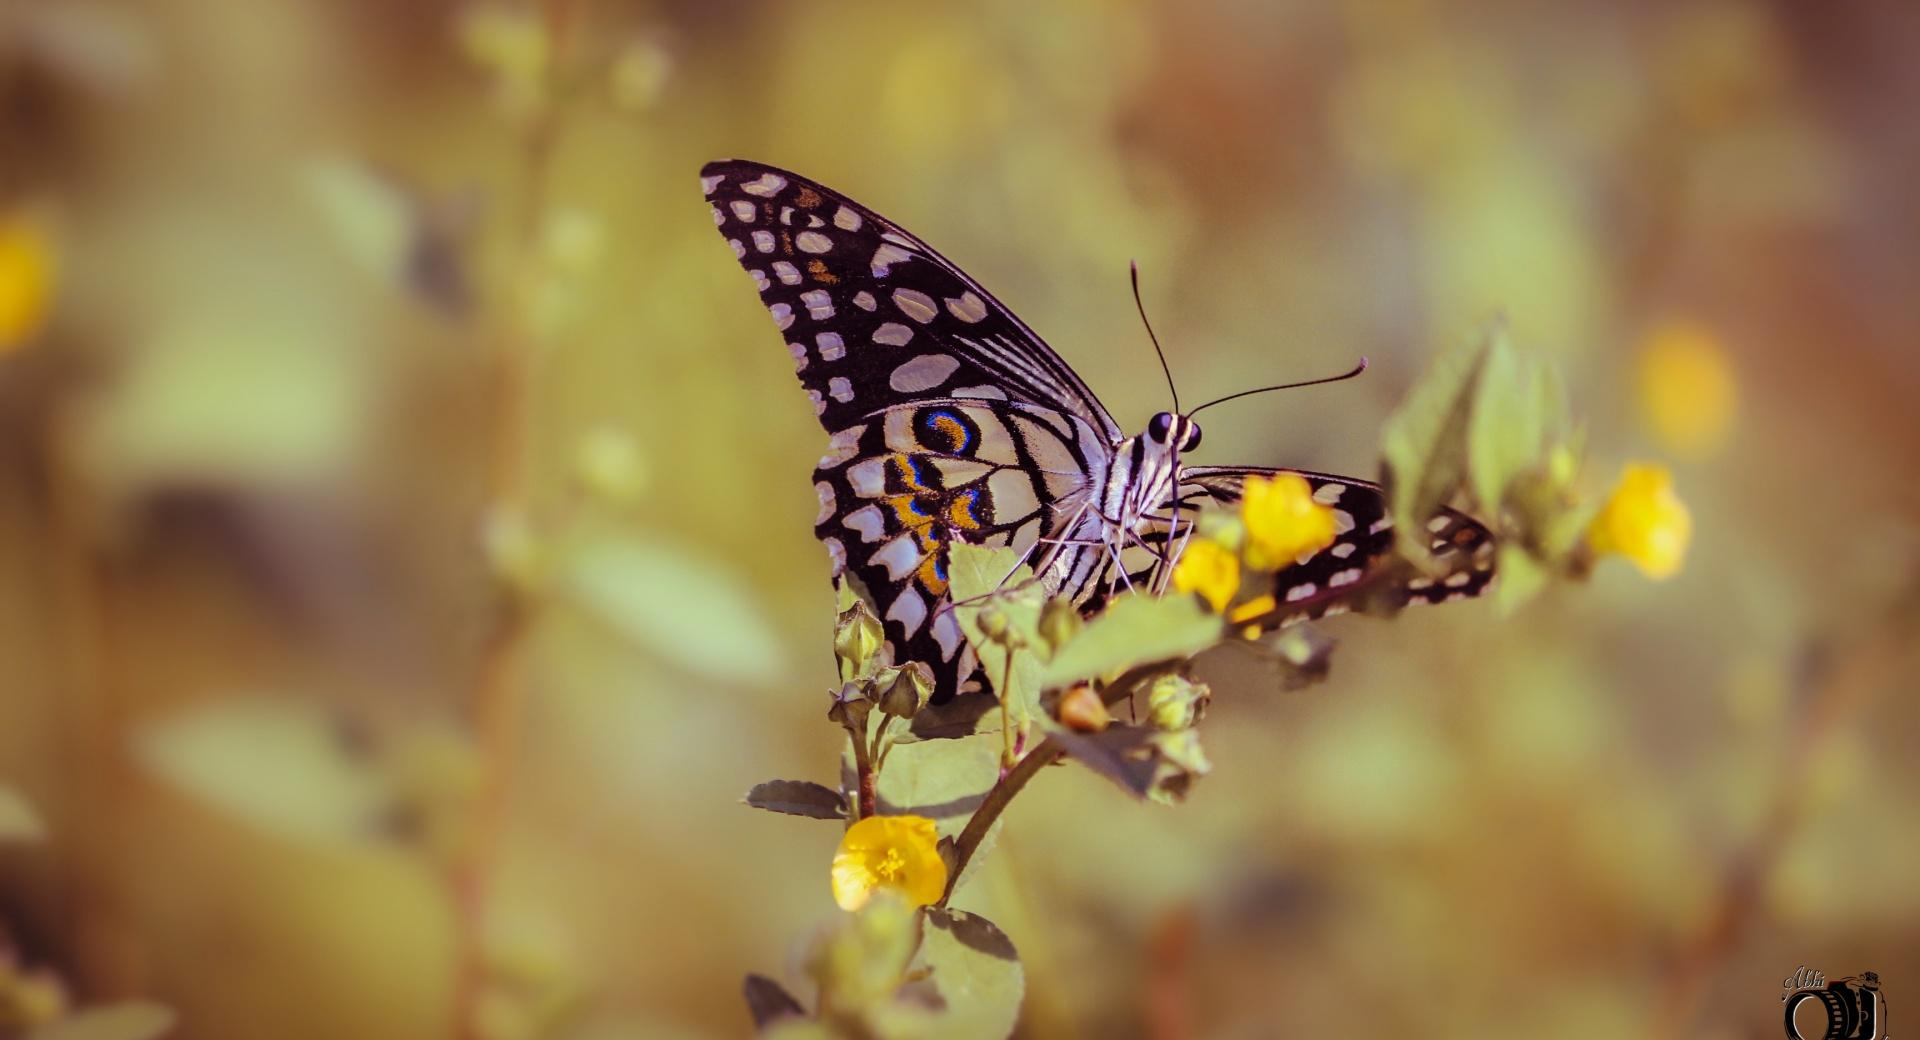 Image Detail For Colorful Ipad Wallpaper Hd 1024x1024: Papilio Elephenor Butterfly 1024 X 1024 IPad Wallpaper